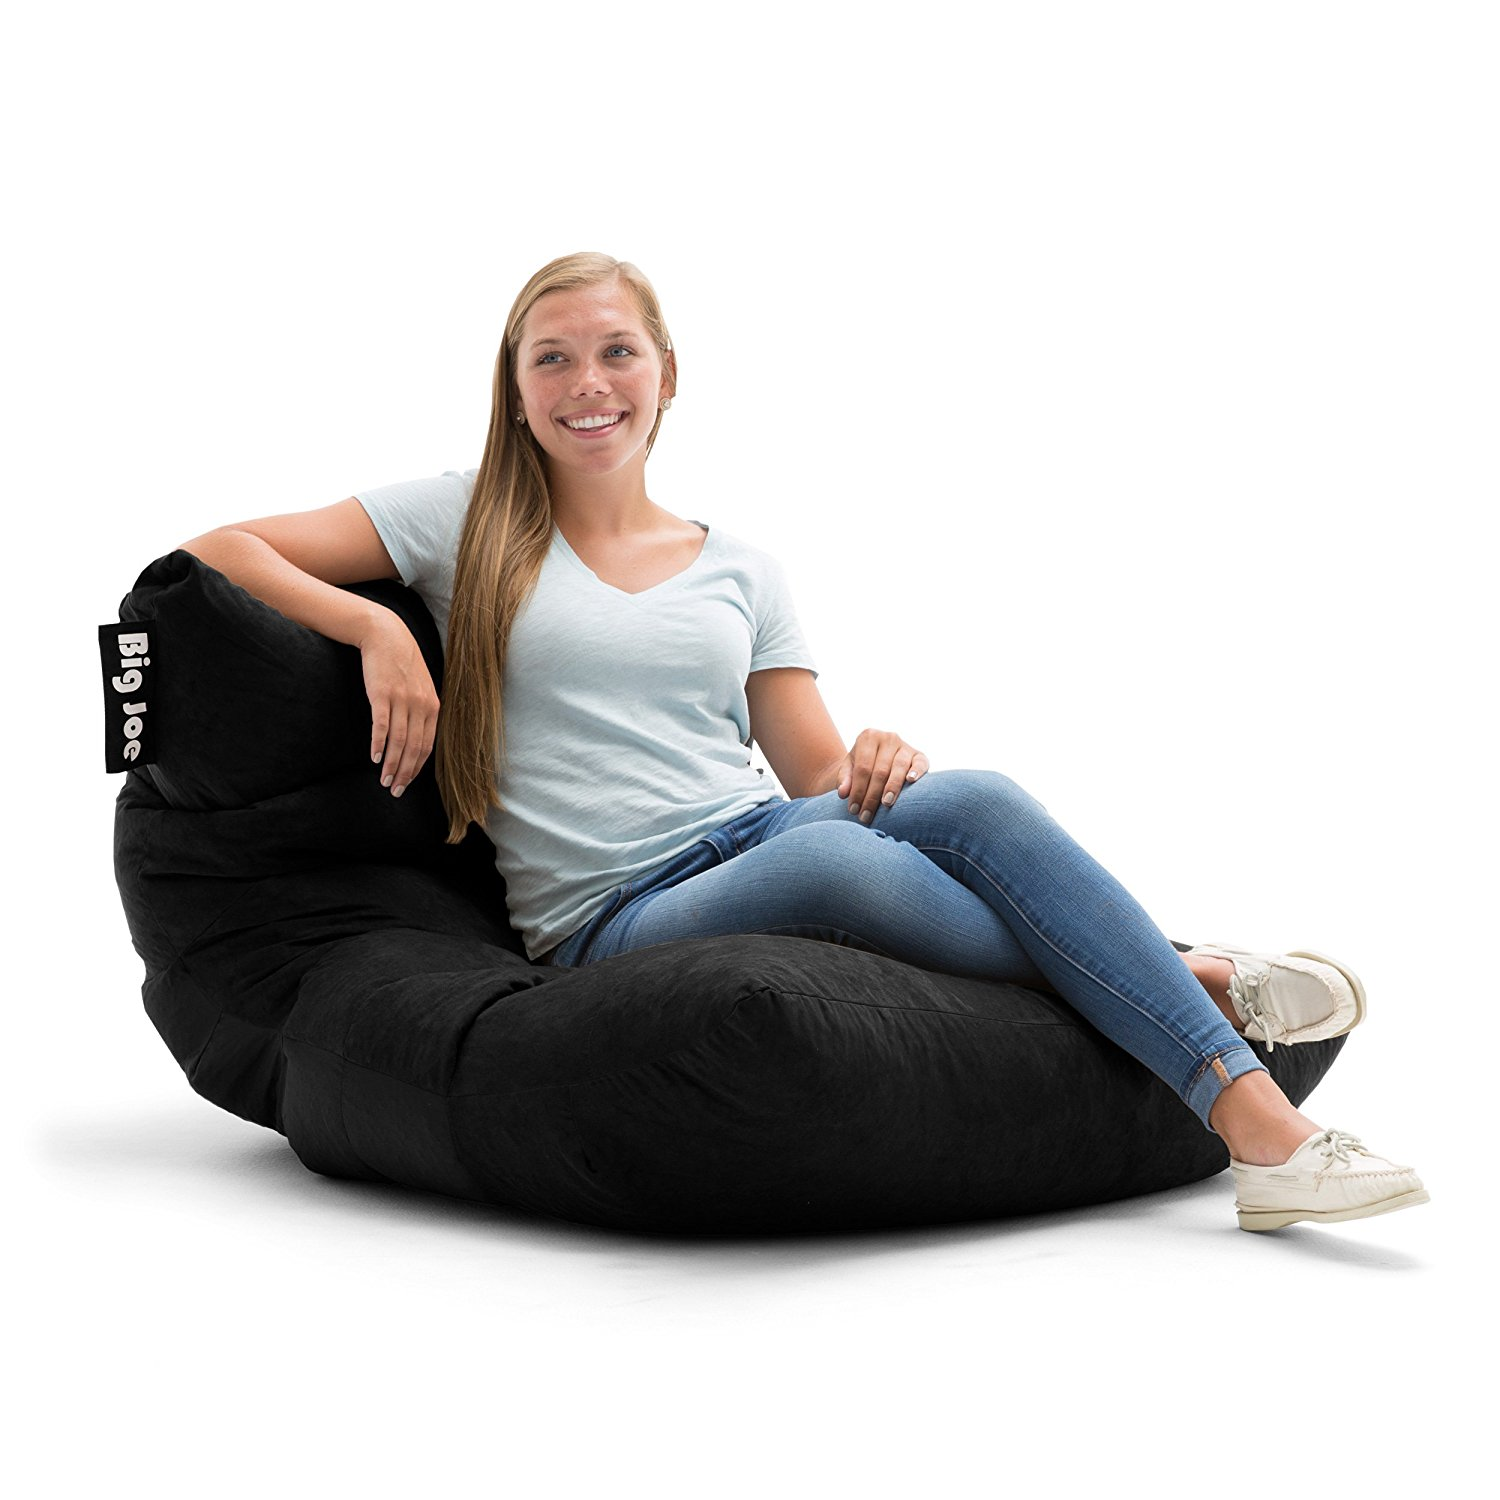 Awe Inspiring Details About Big Joe Roma In Absolute Comfort Suede Plus Bean Bag Chair In Black Finish Beatyapartments Chair Design Images Beatyapartmentscom